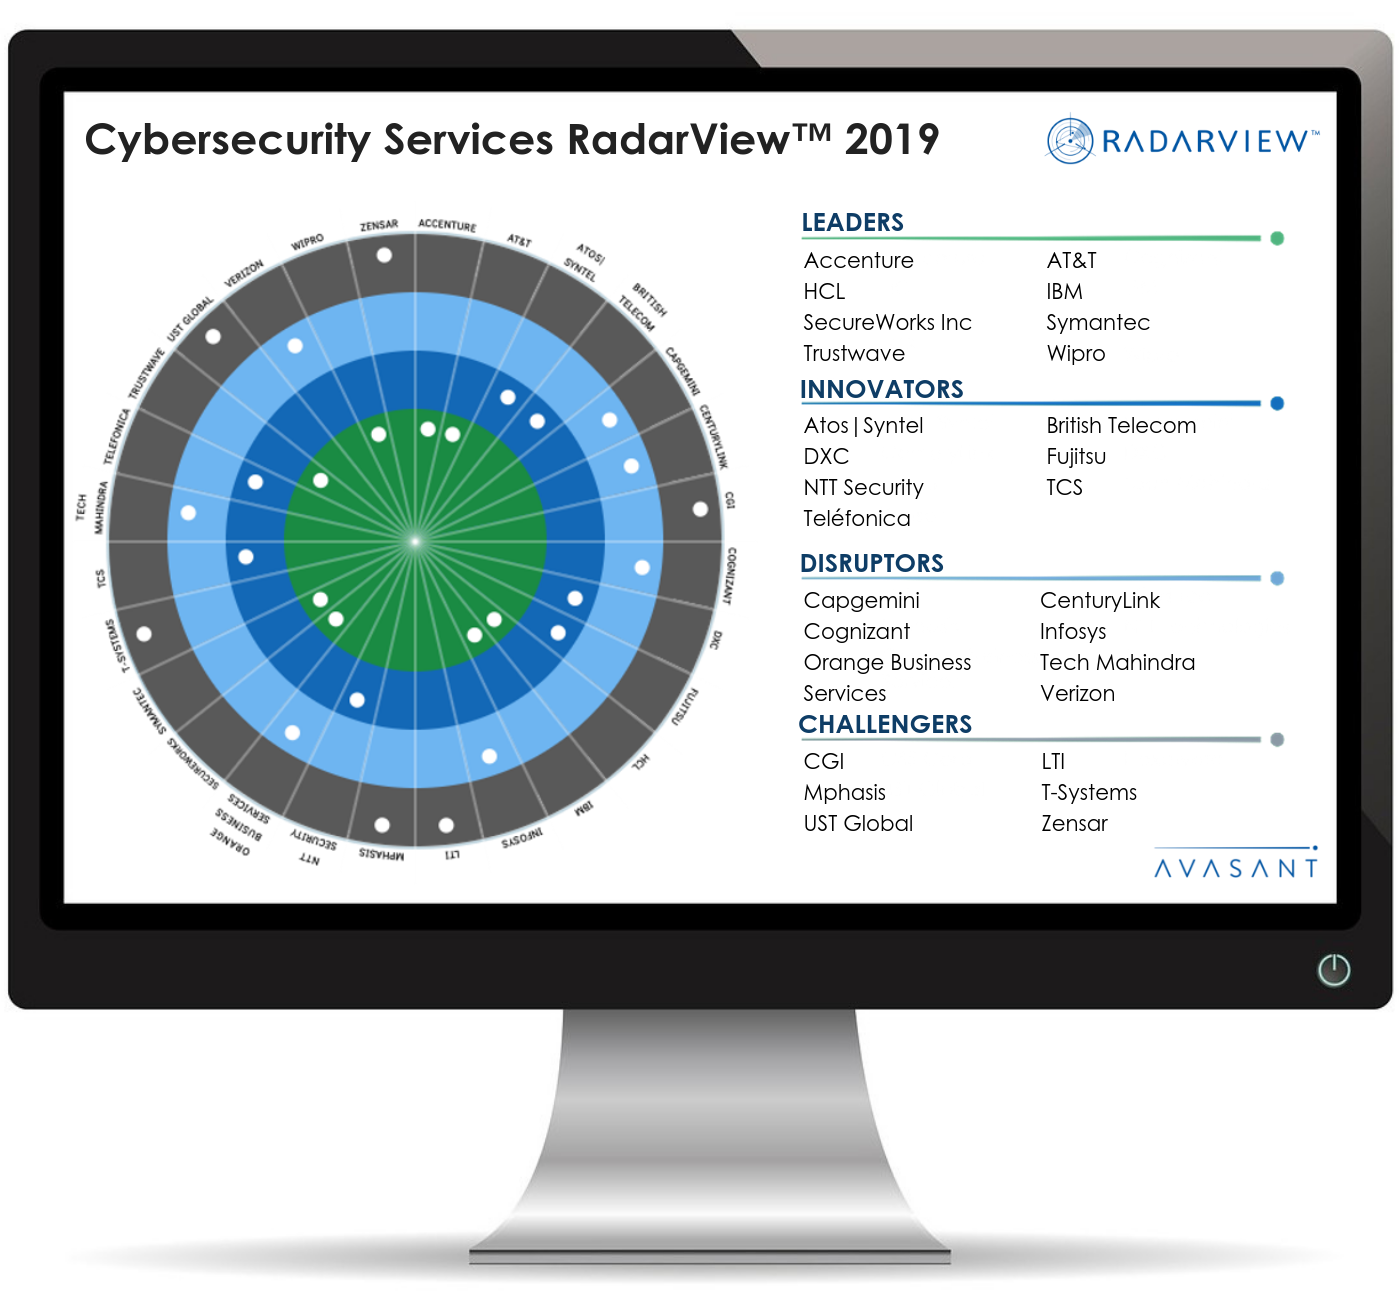 Cybersecurity Services RadarView